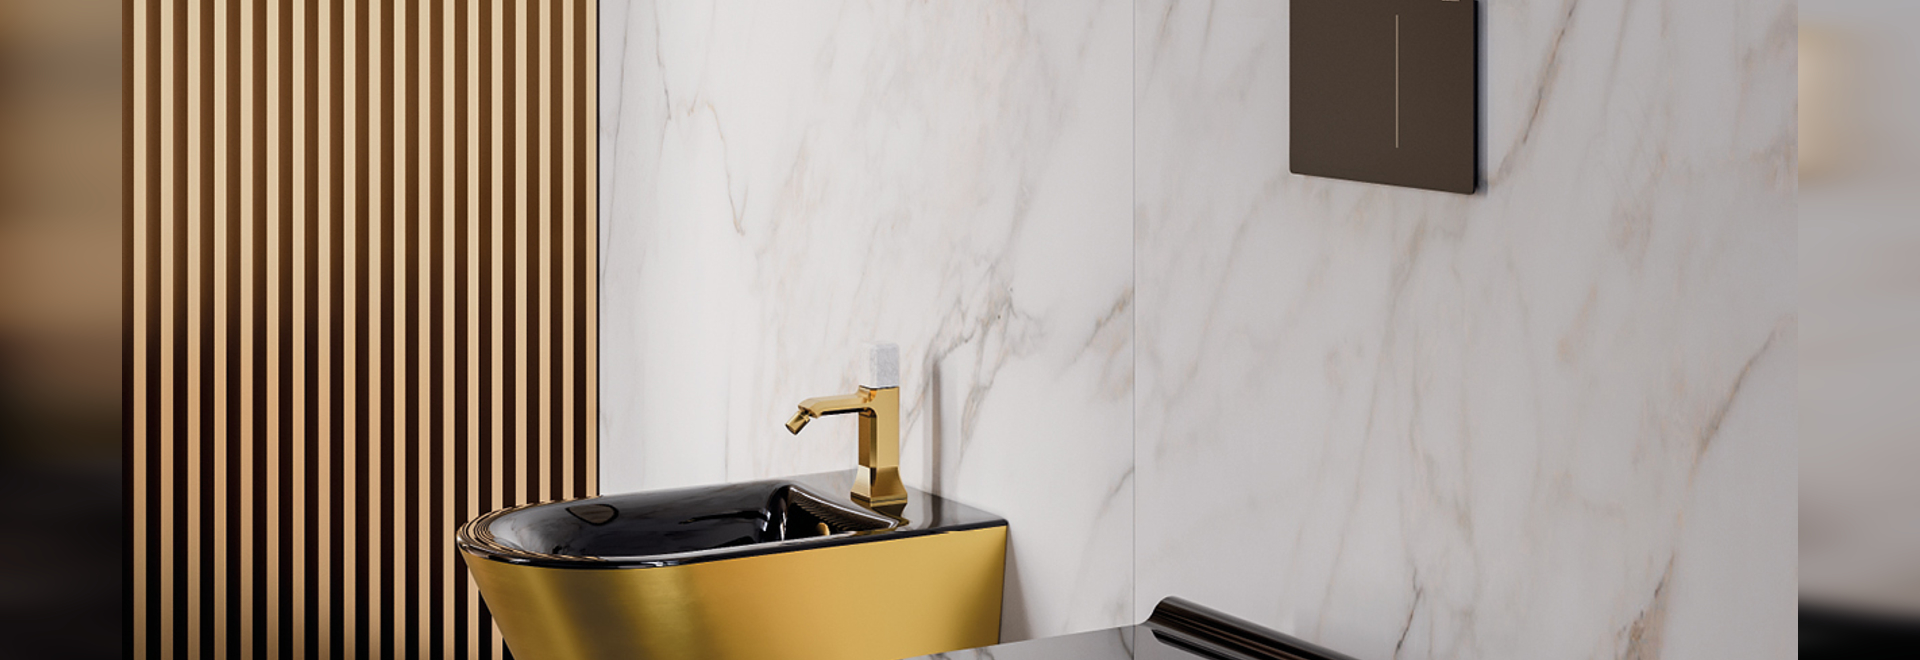 Zero Wc Newflush | Bidet Soft 55 Gold-Black